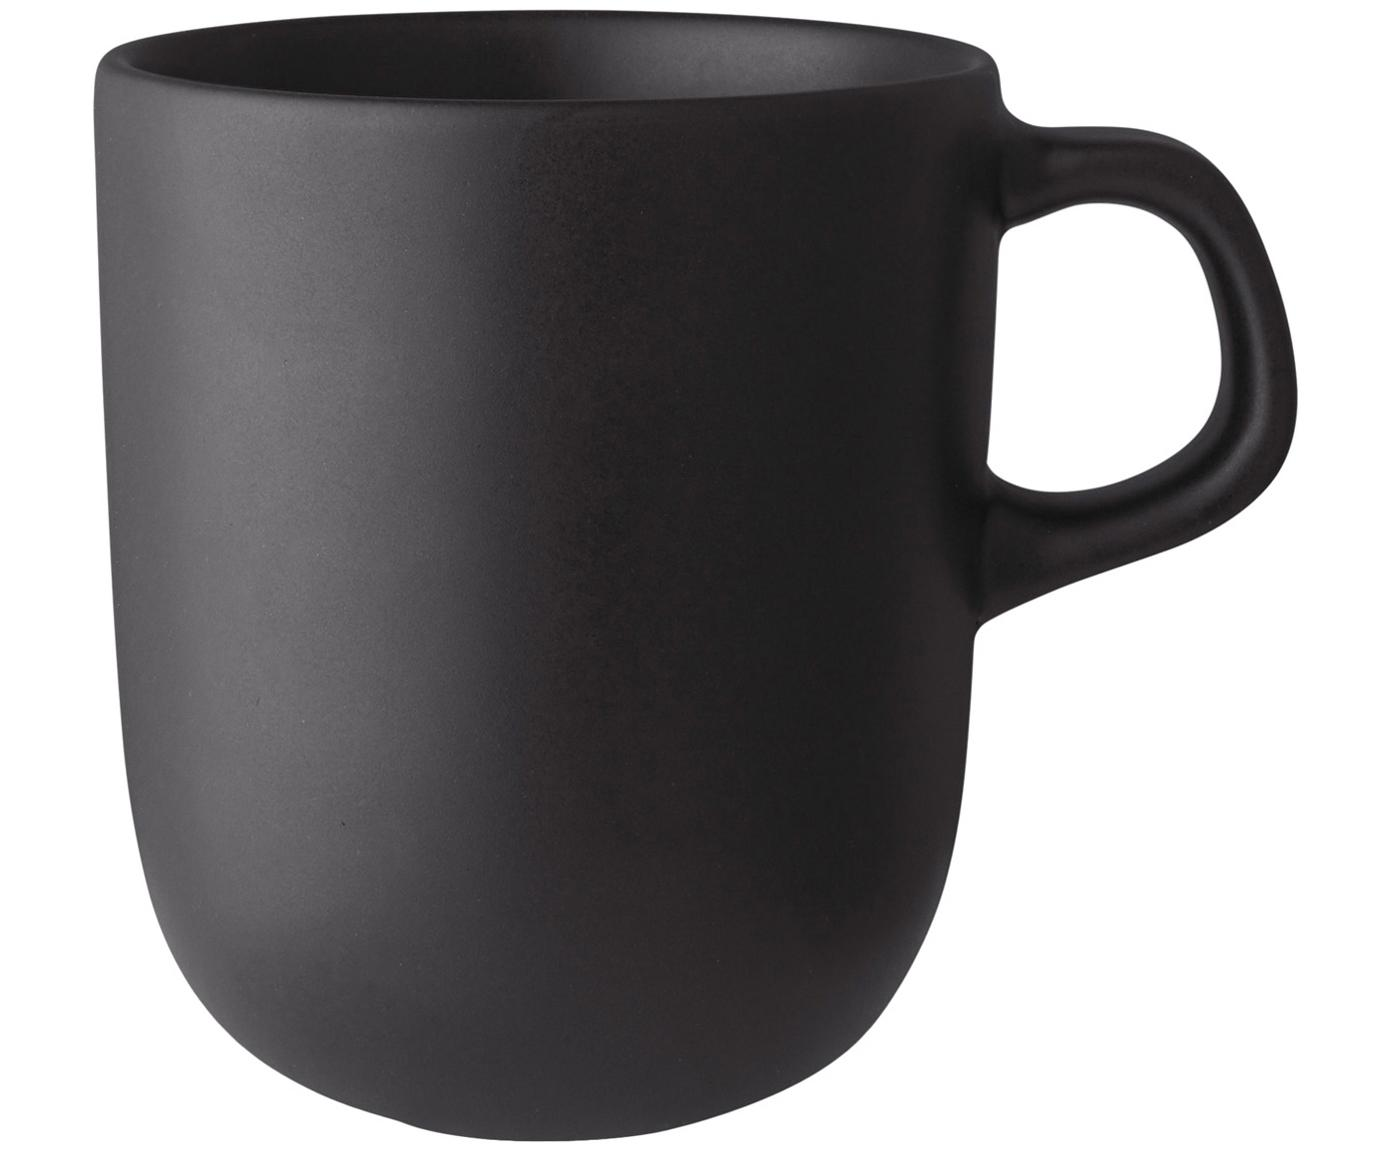 Tazze Nordic Kitchen, 4 pz., Terracotta, Nero opaco, 300 ml